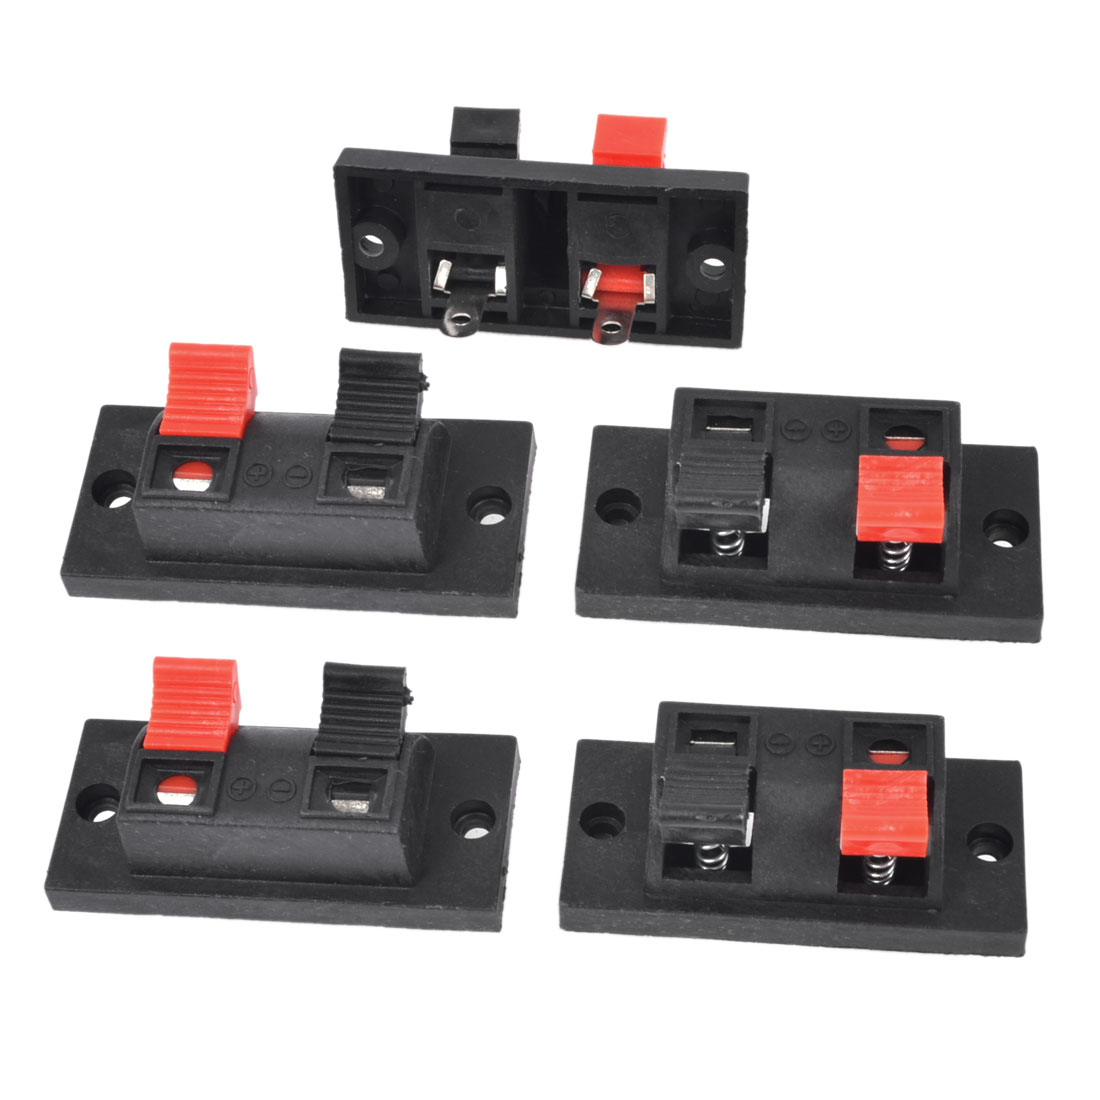 5Pcs 2 Way Large Stereo Speaker Plate Terminal Strip Push Release Connector Block